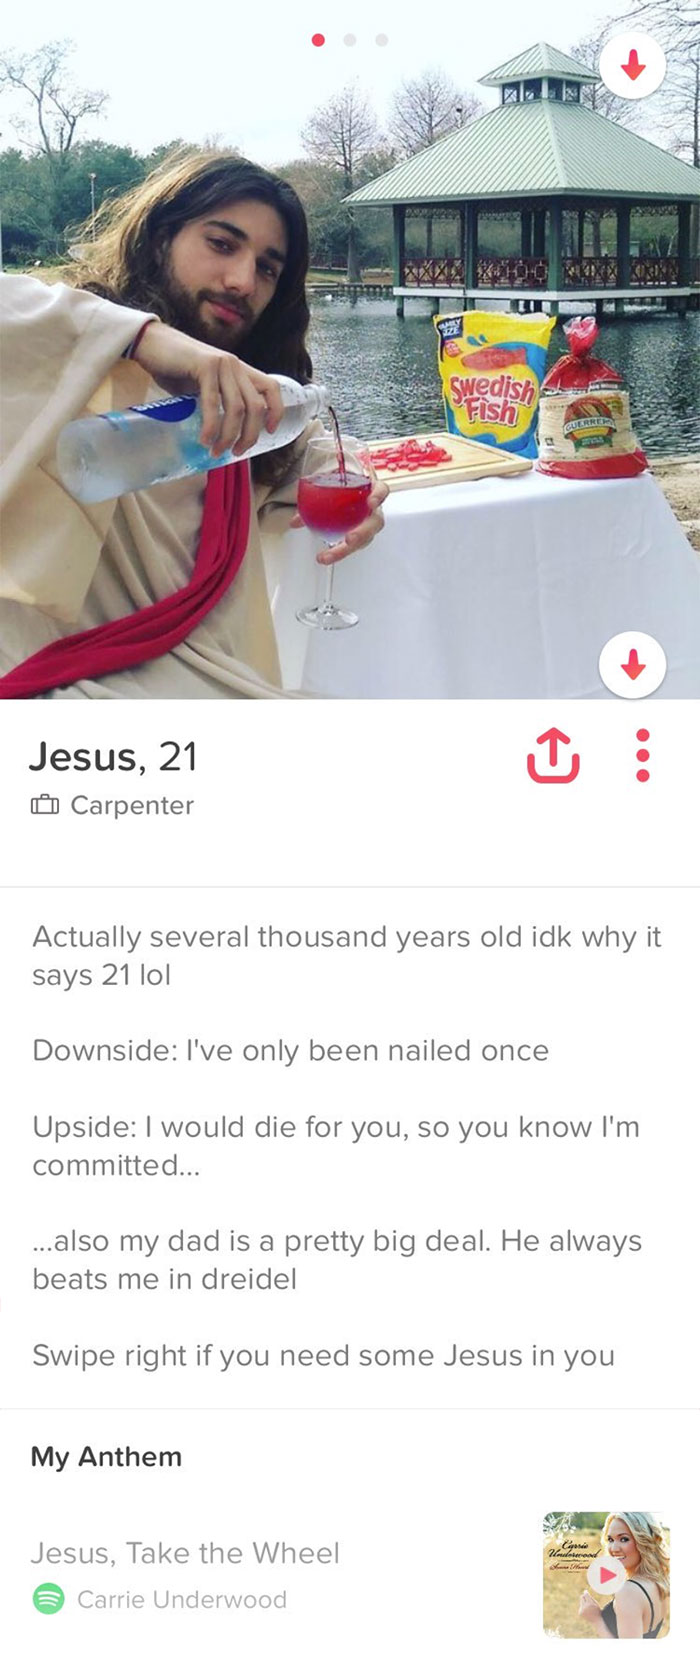 48 Of The Best Tinder Profiles Ever - Gallery | eBaums World